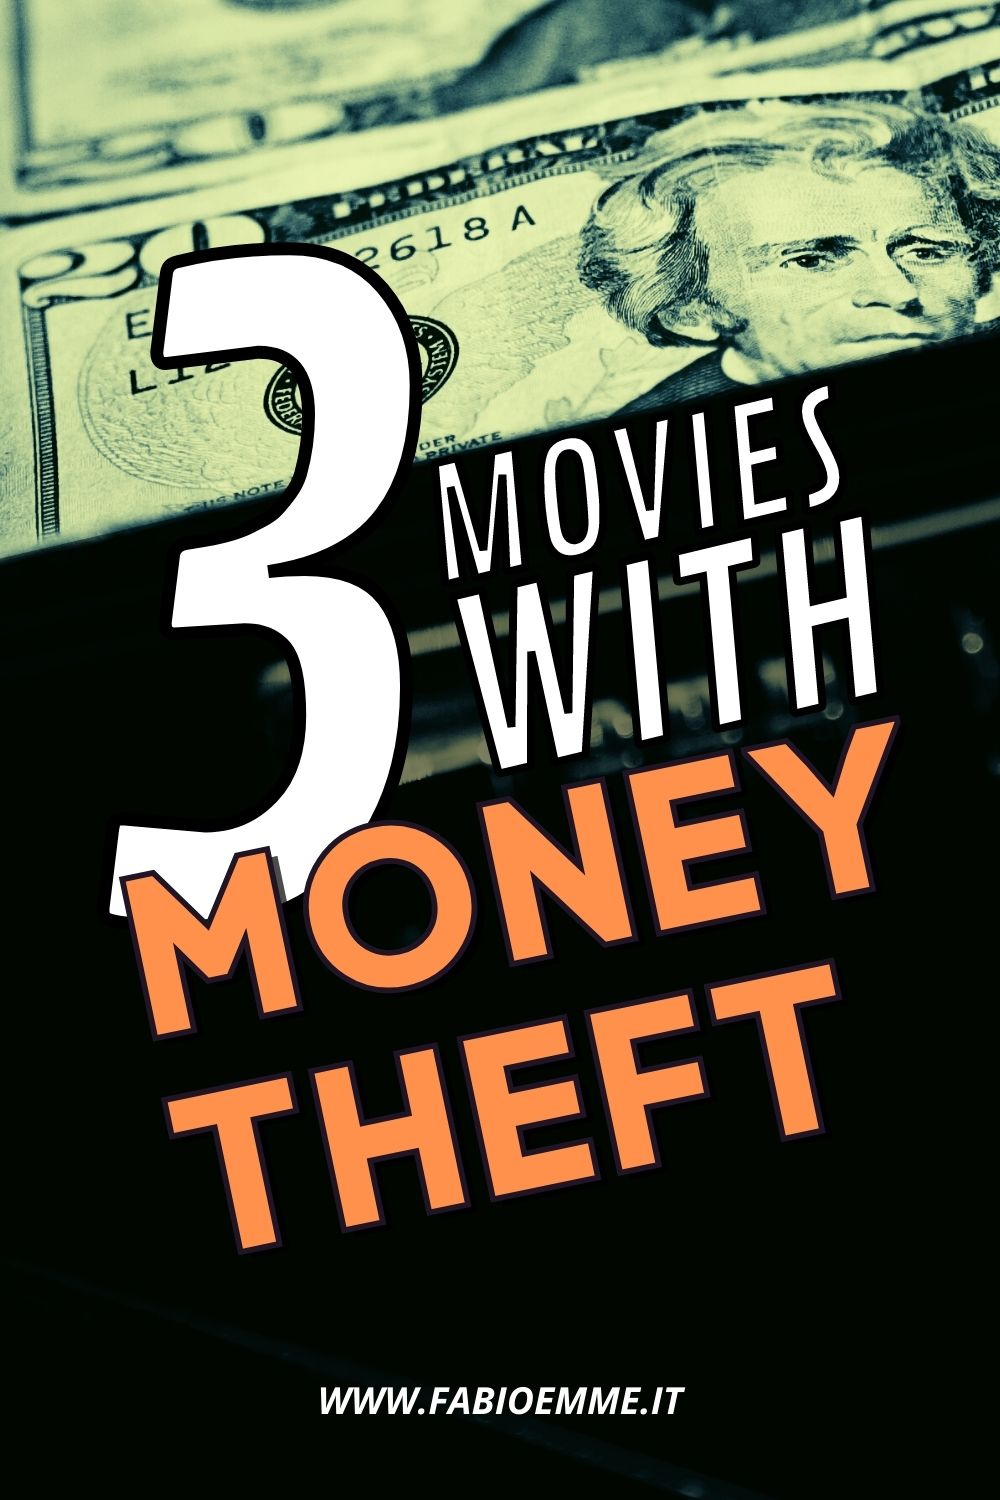 Easy money attracts anyone. But they are never easy. In the end, they always cost everything. 3 Movies with Money you may missed. #MOVIES